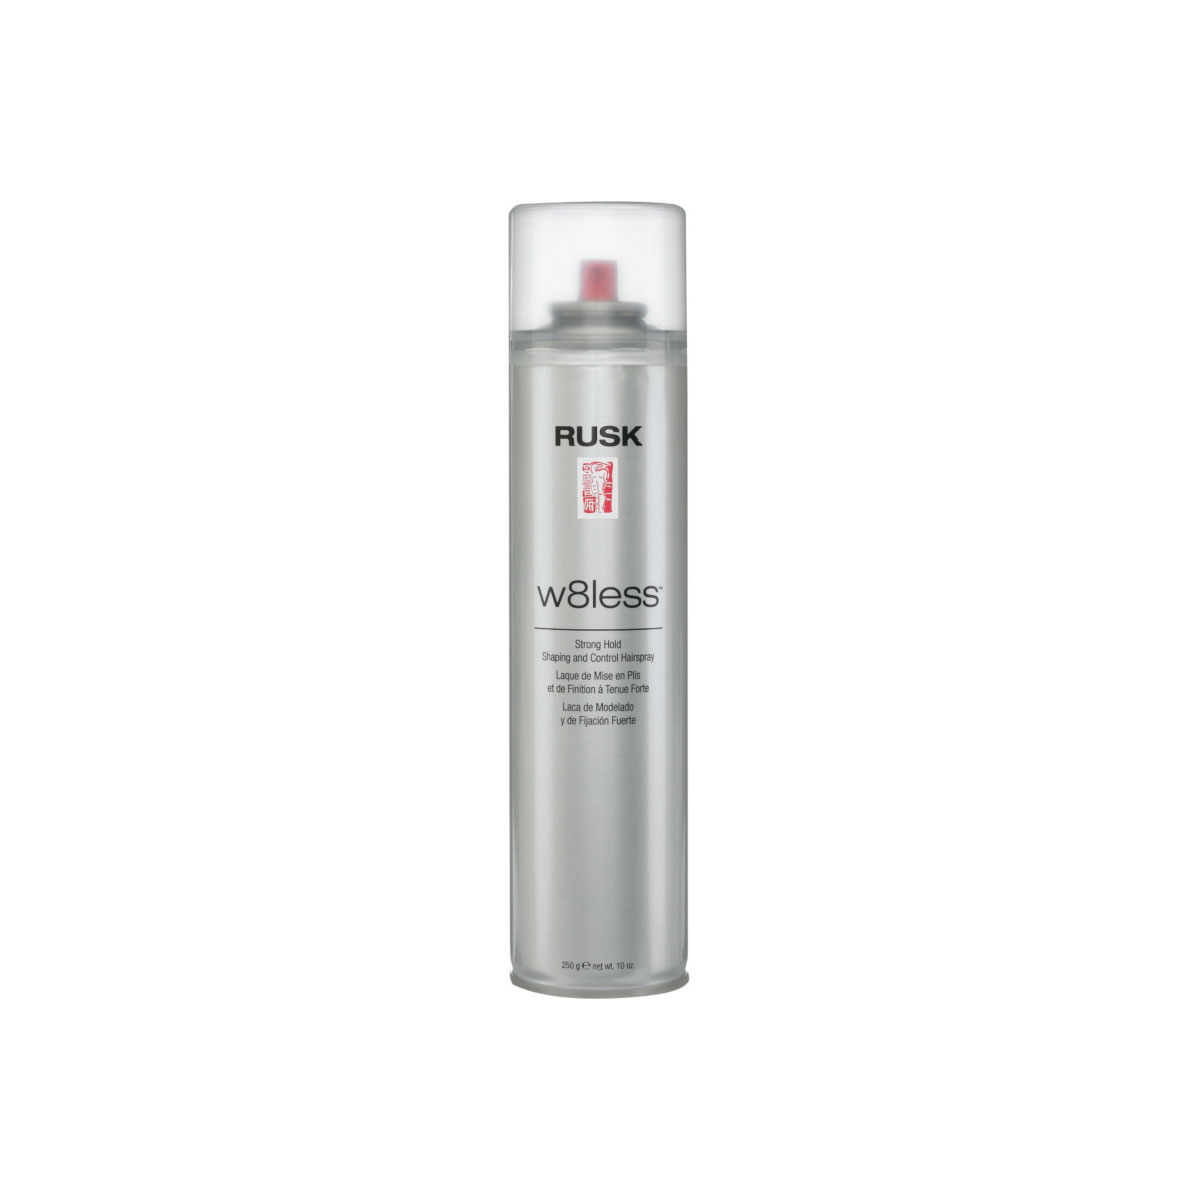 Rusk W8less Strong Hold Shaping and Control Hairspray